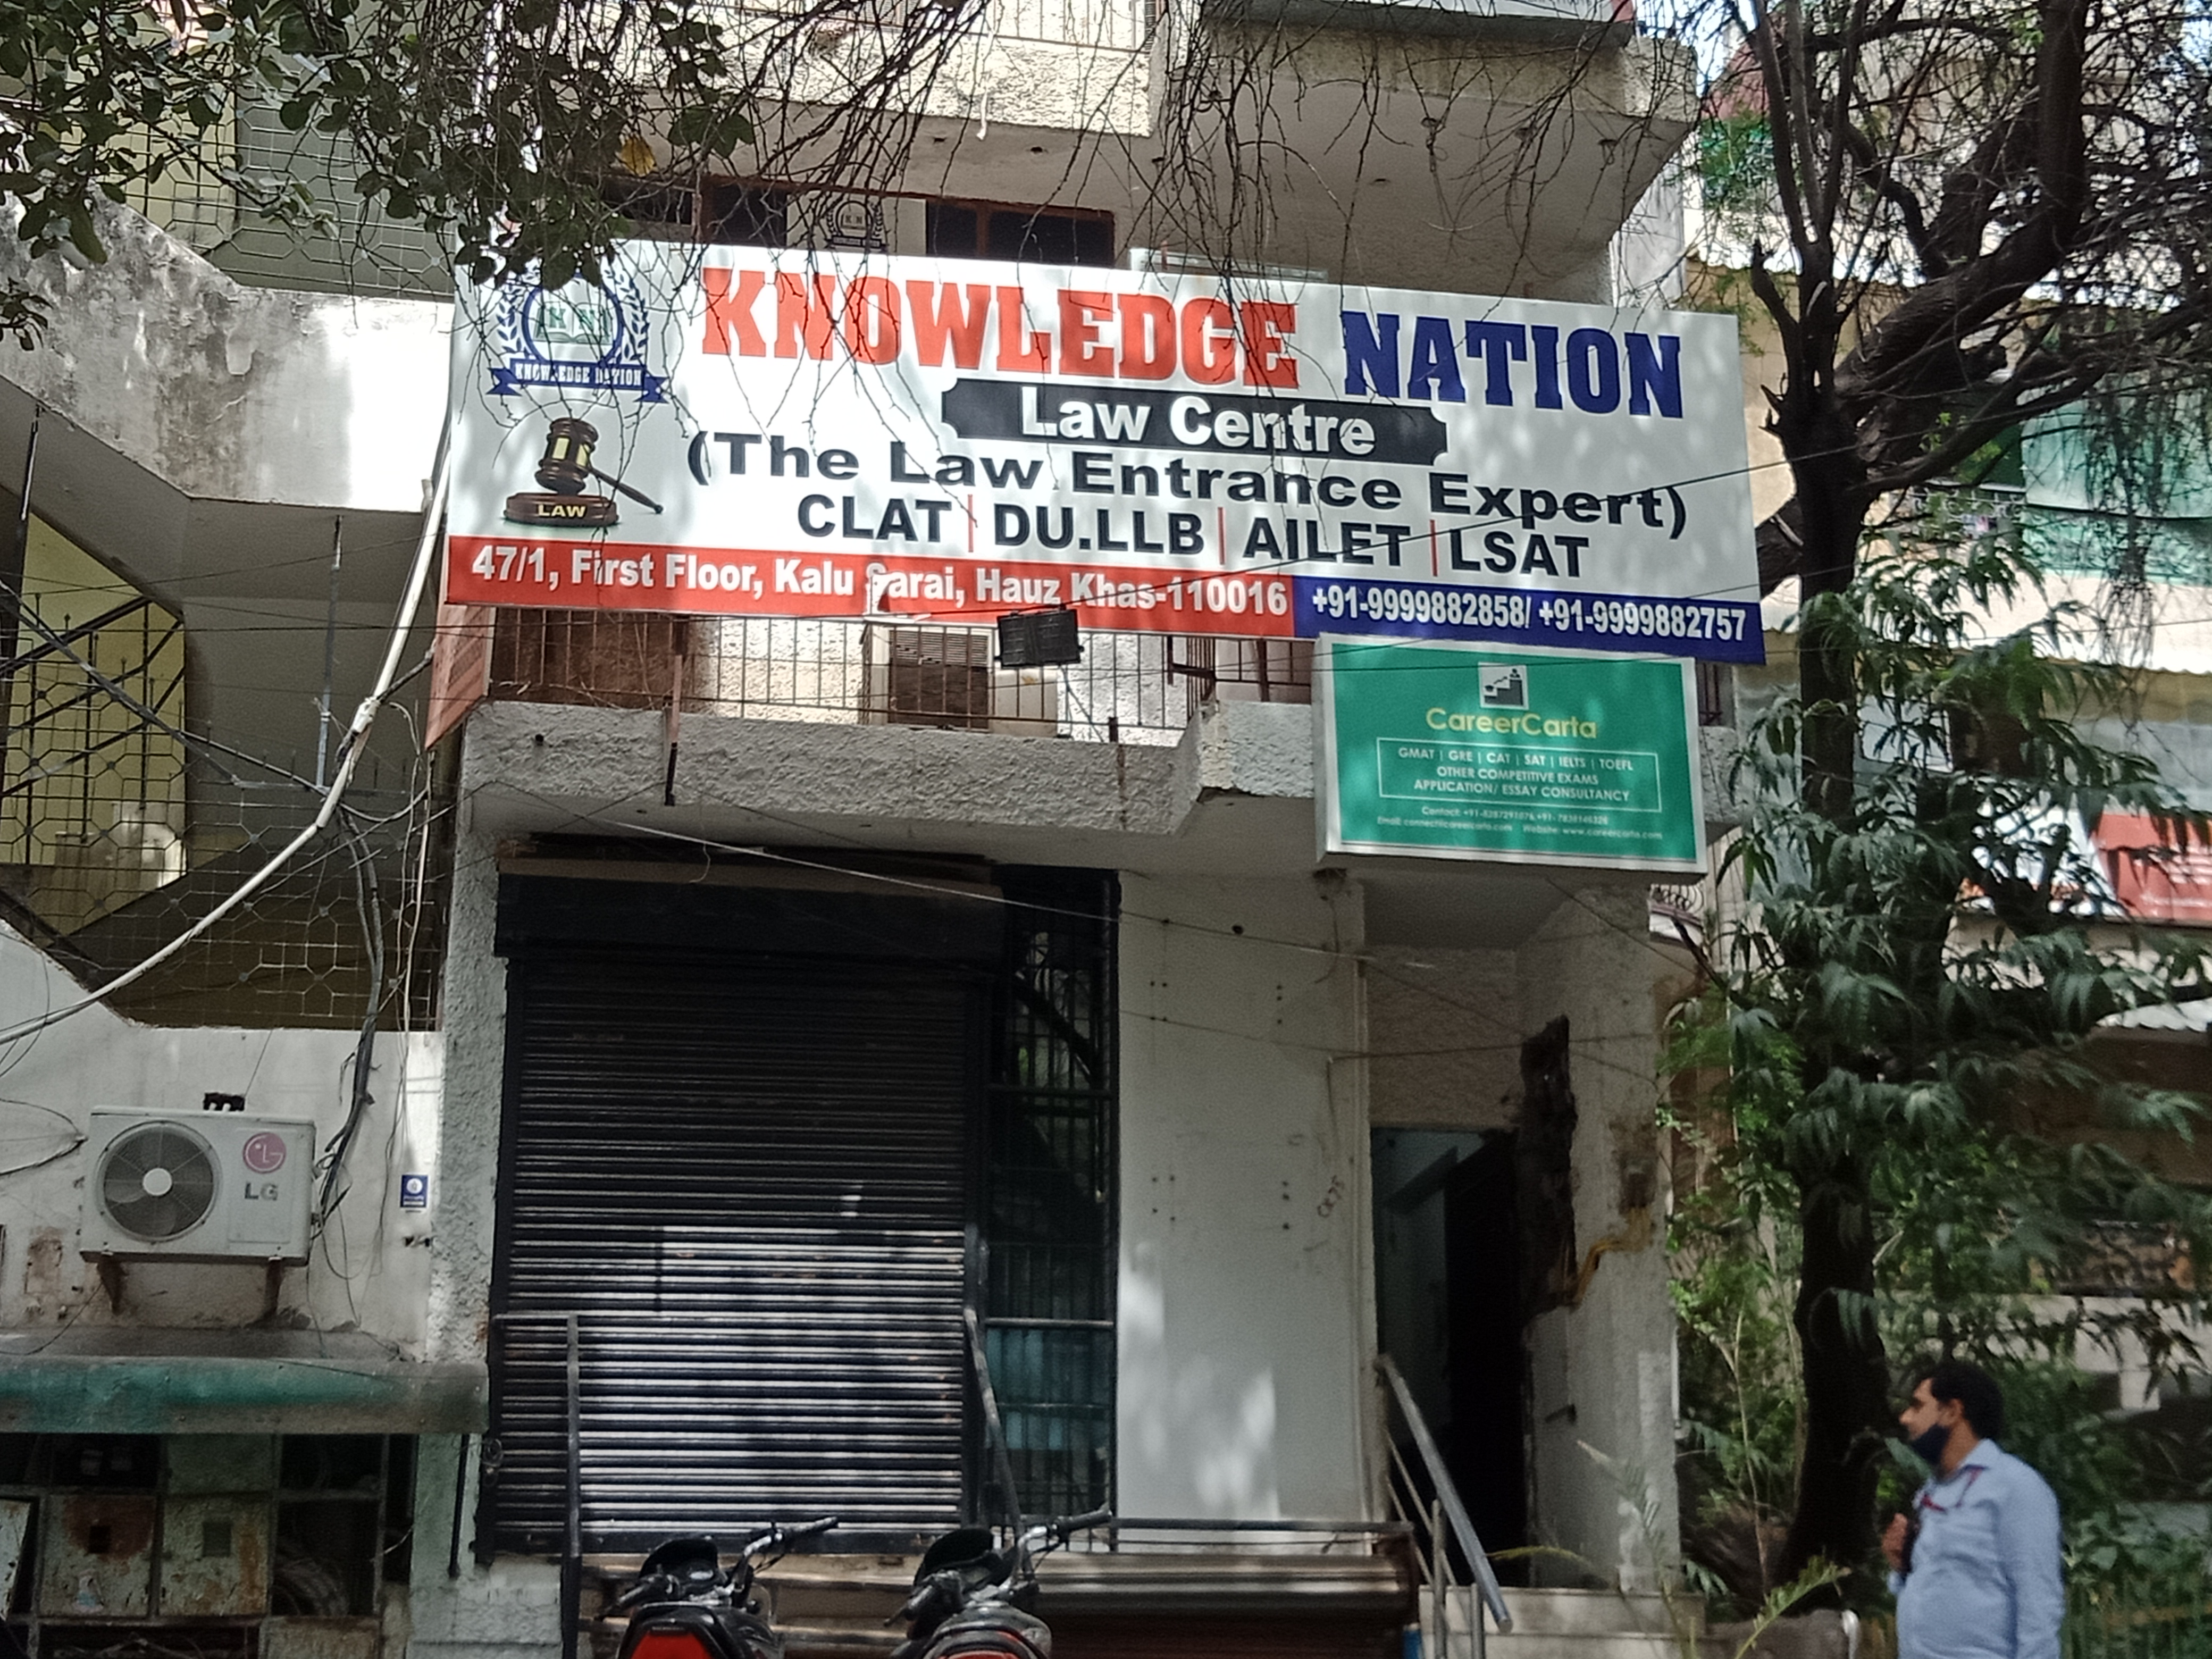 KNOWLEDGE NATION Gallery